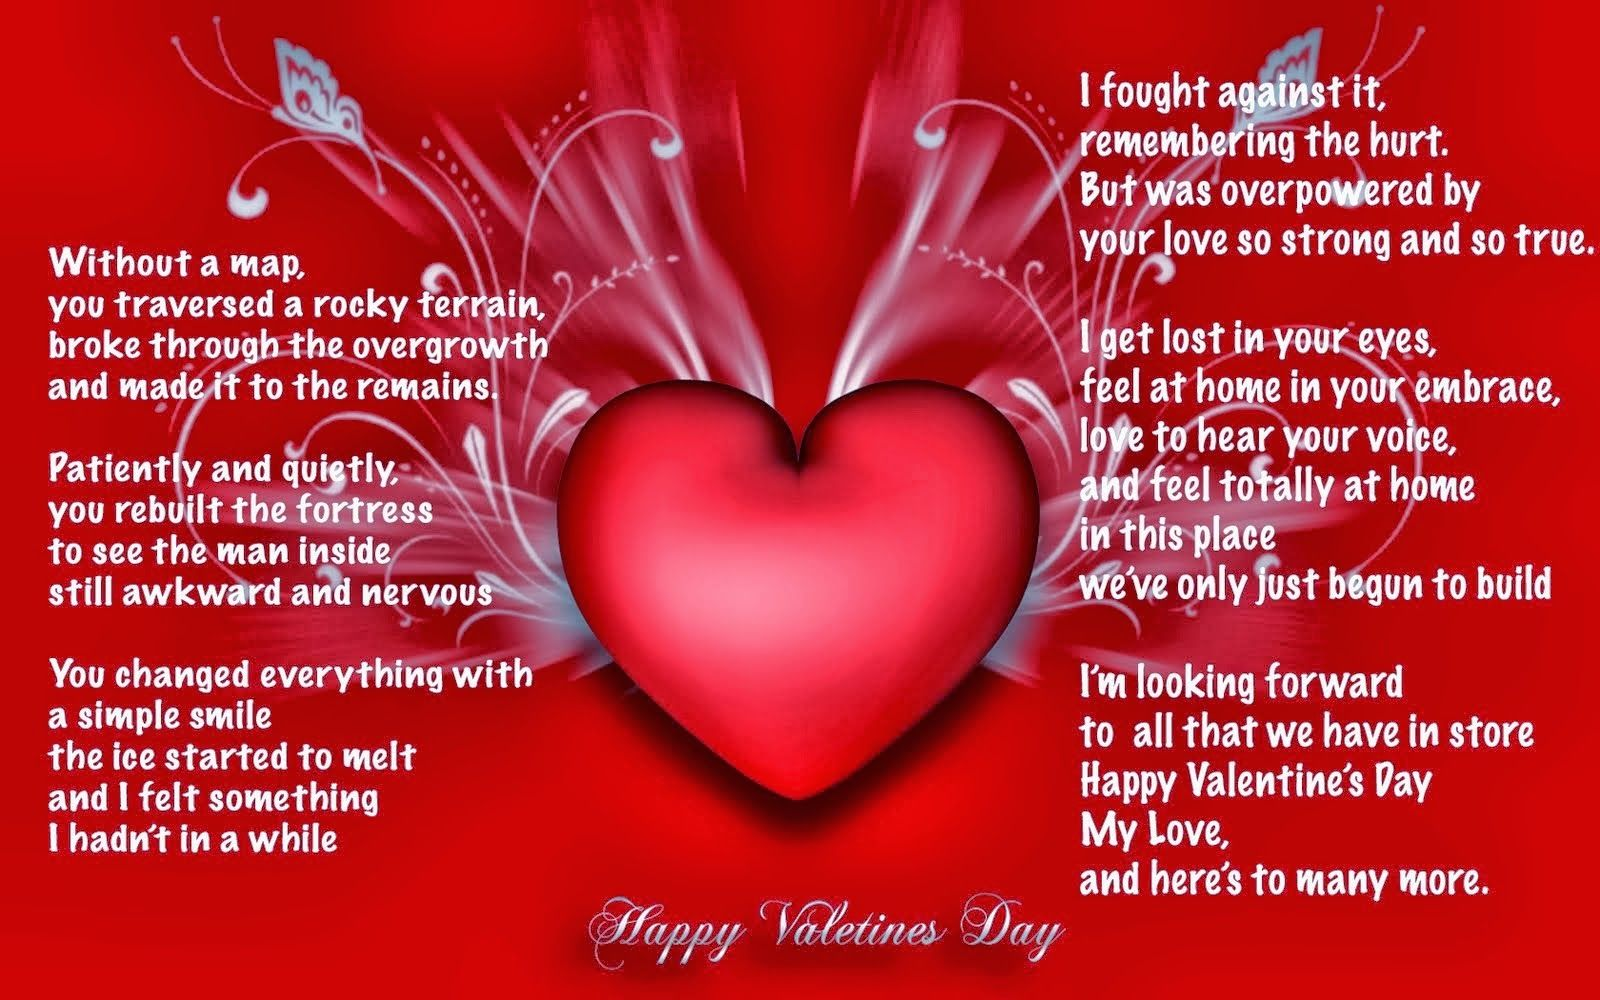 valentines day cards Google – Great Valentines Day Card Messages